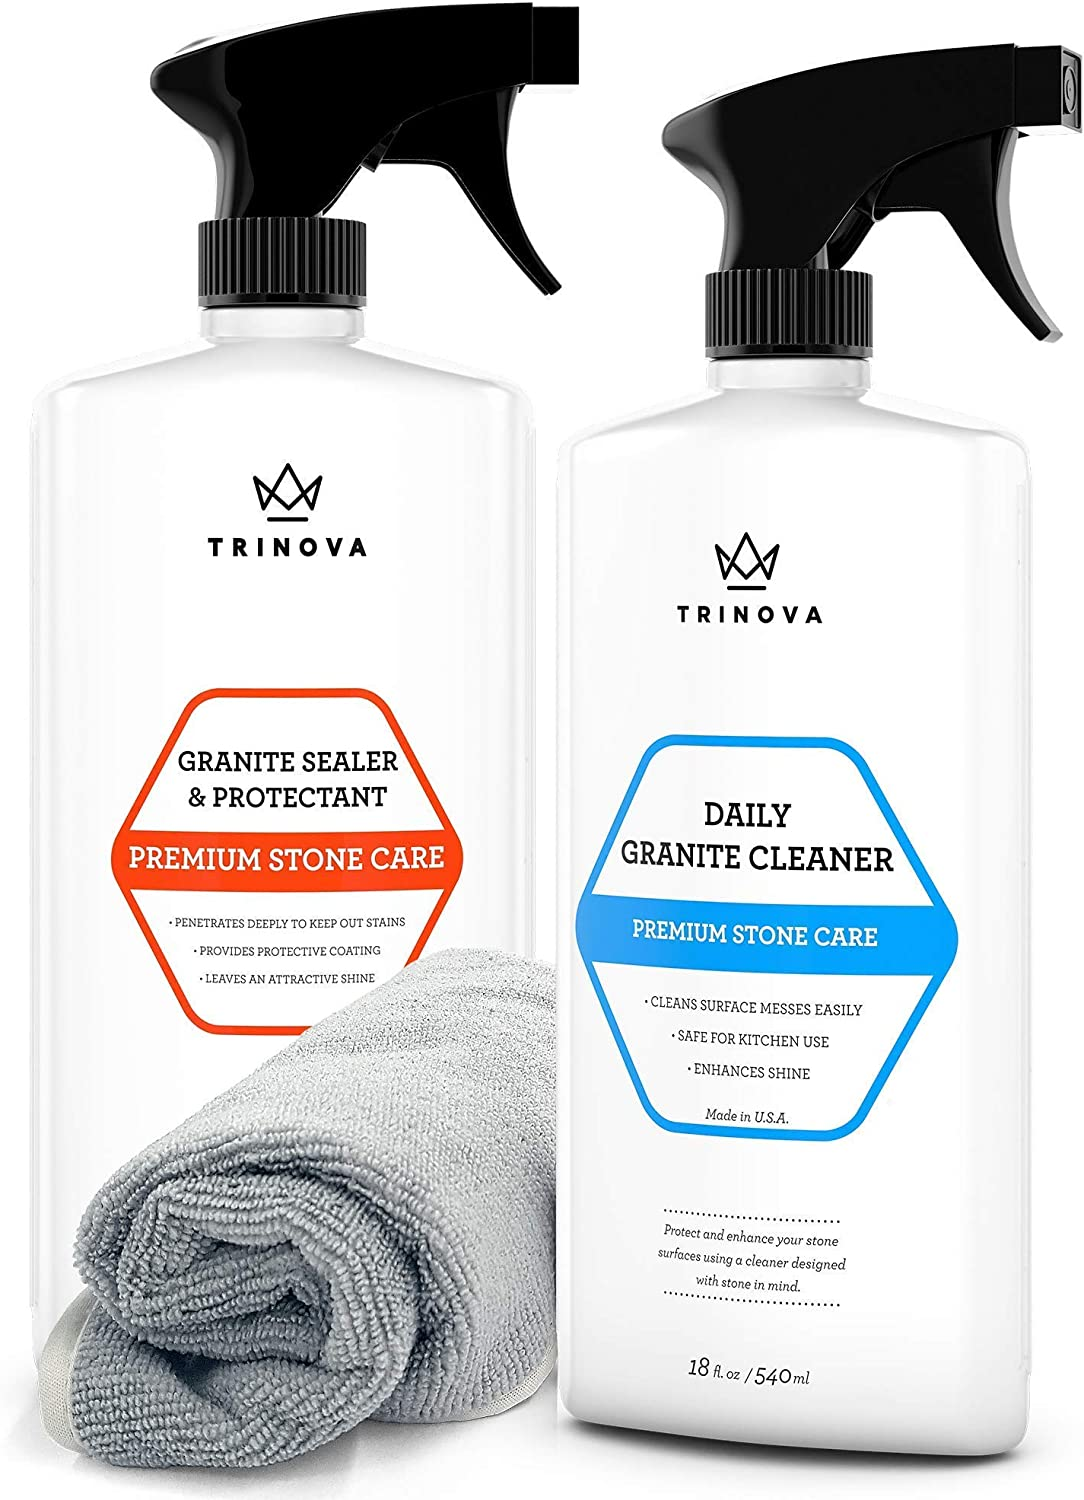 TriNova Granite Cleaner and Granite Sealer Bundle Pack - Cleans Grime & Grease, Enhances Shine & Protects Your Granite, Marble, and Quartz Countertops